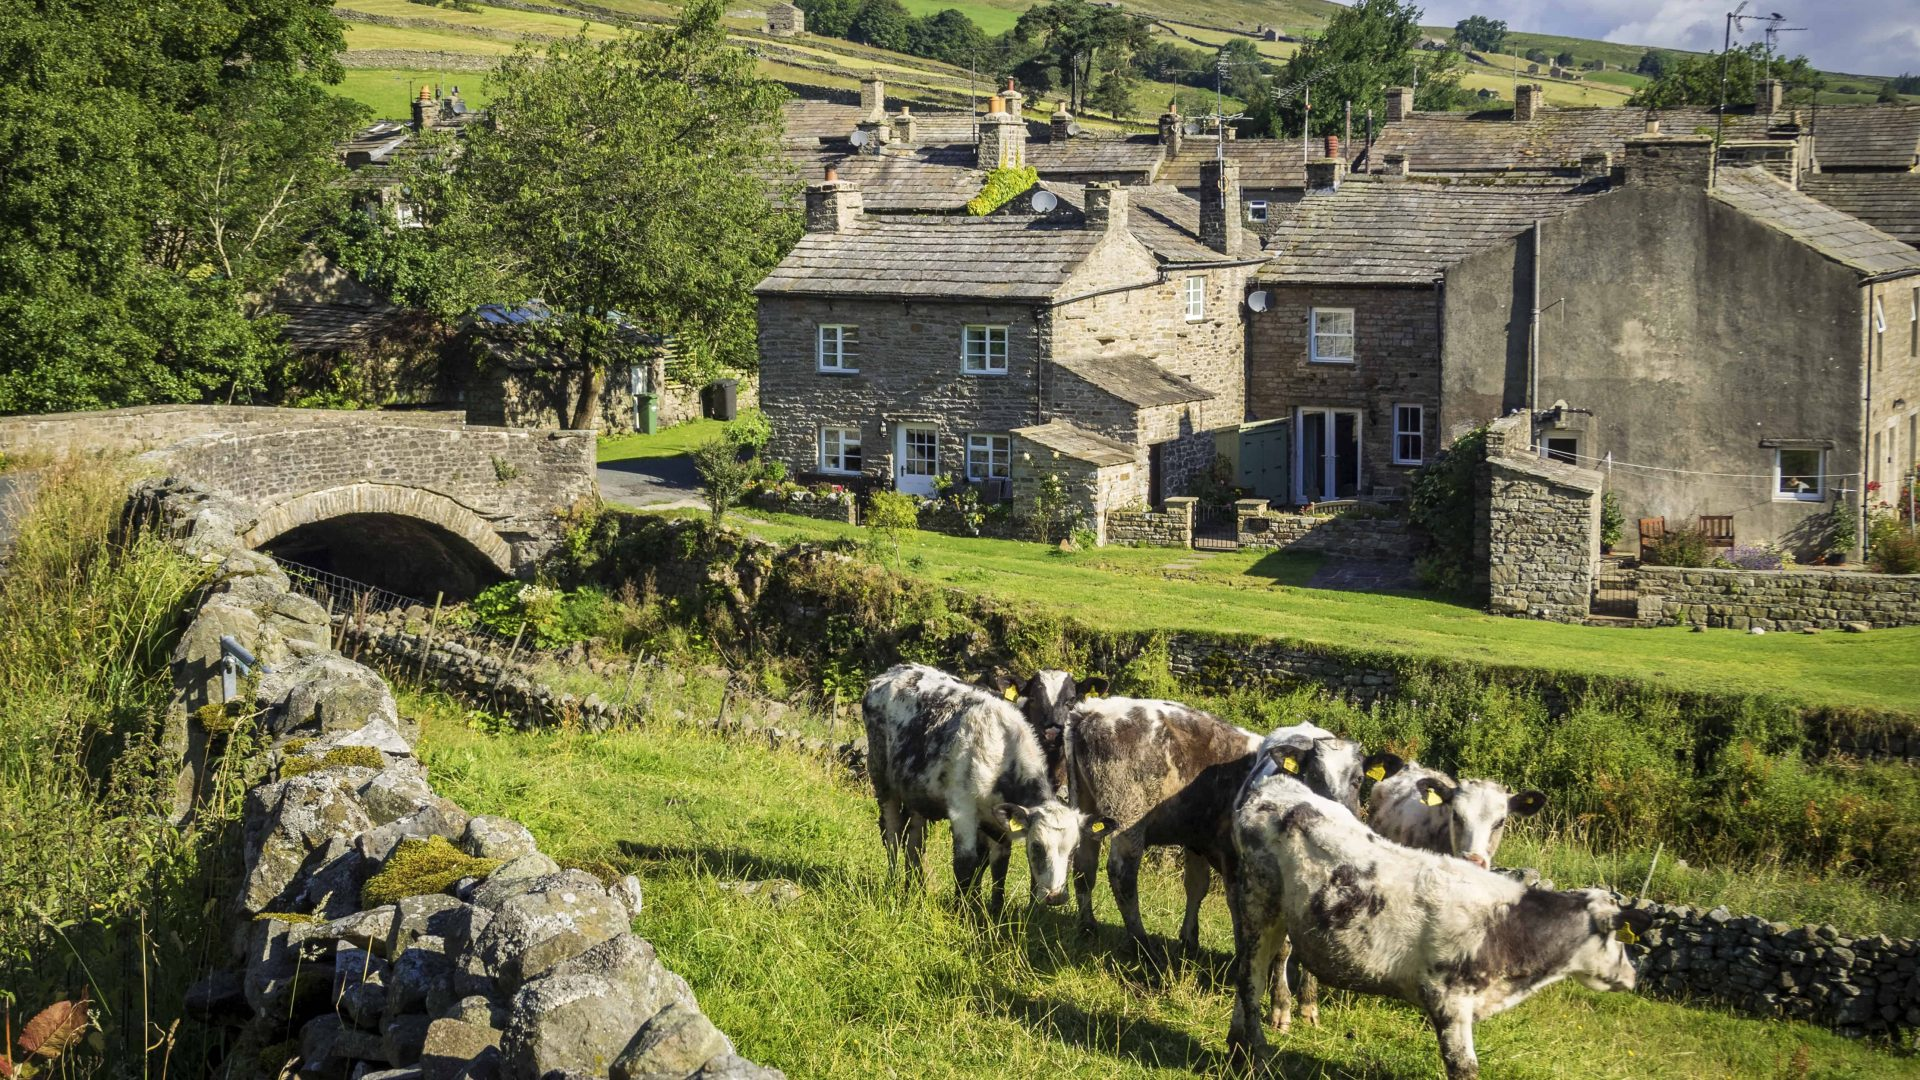 Calves grazing, Thwaitedale, North Yorkshire, England. Bridge over stream and traditional stone cottages.